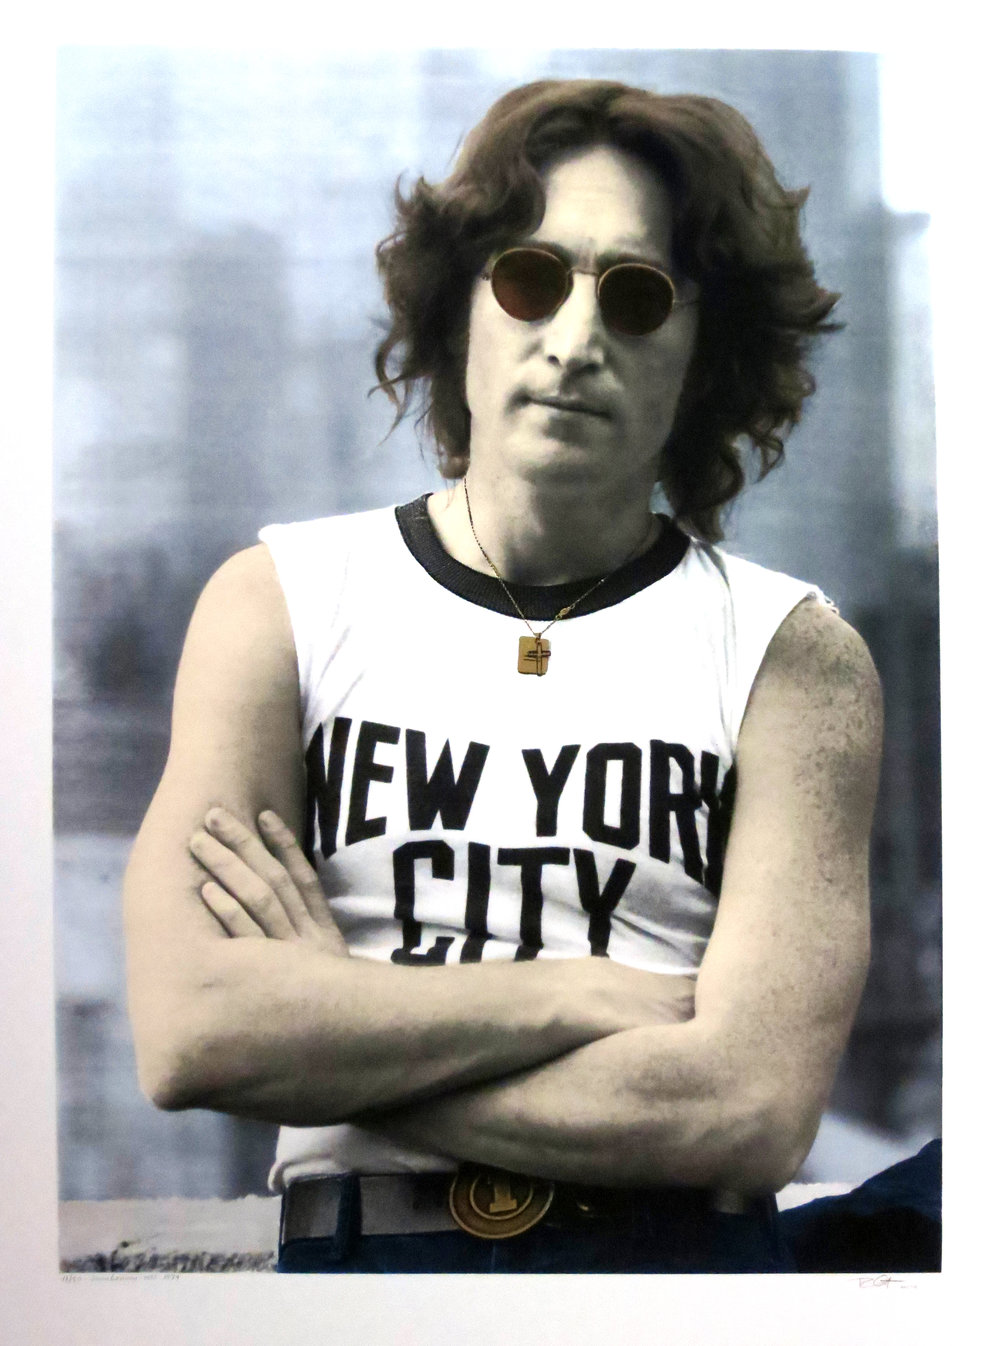 John Lennon, New York Shirt, 1974.